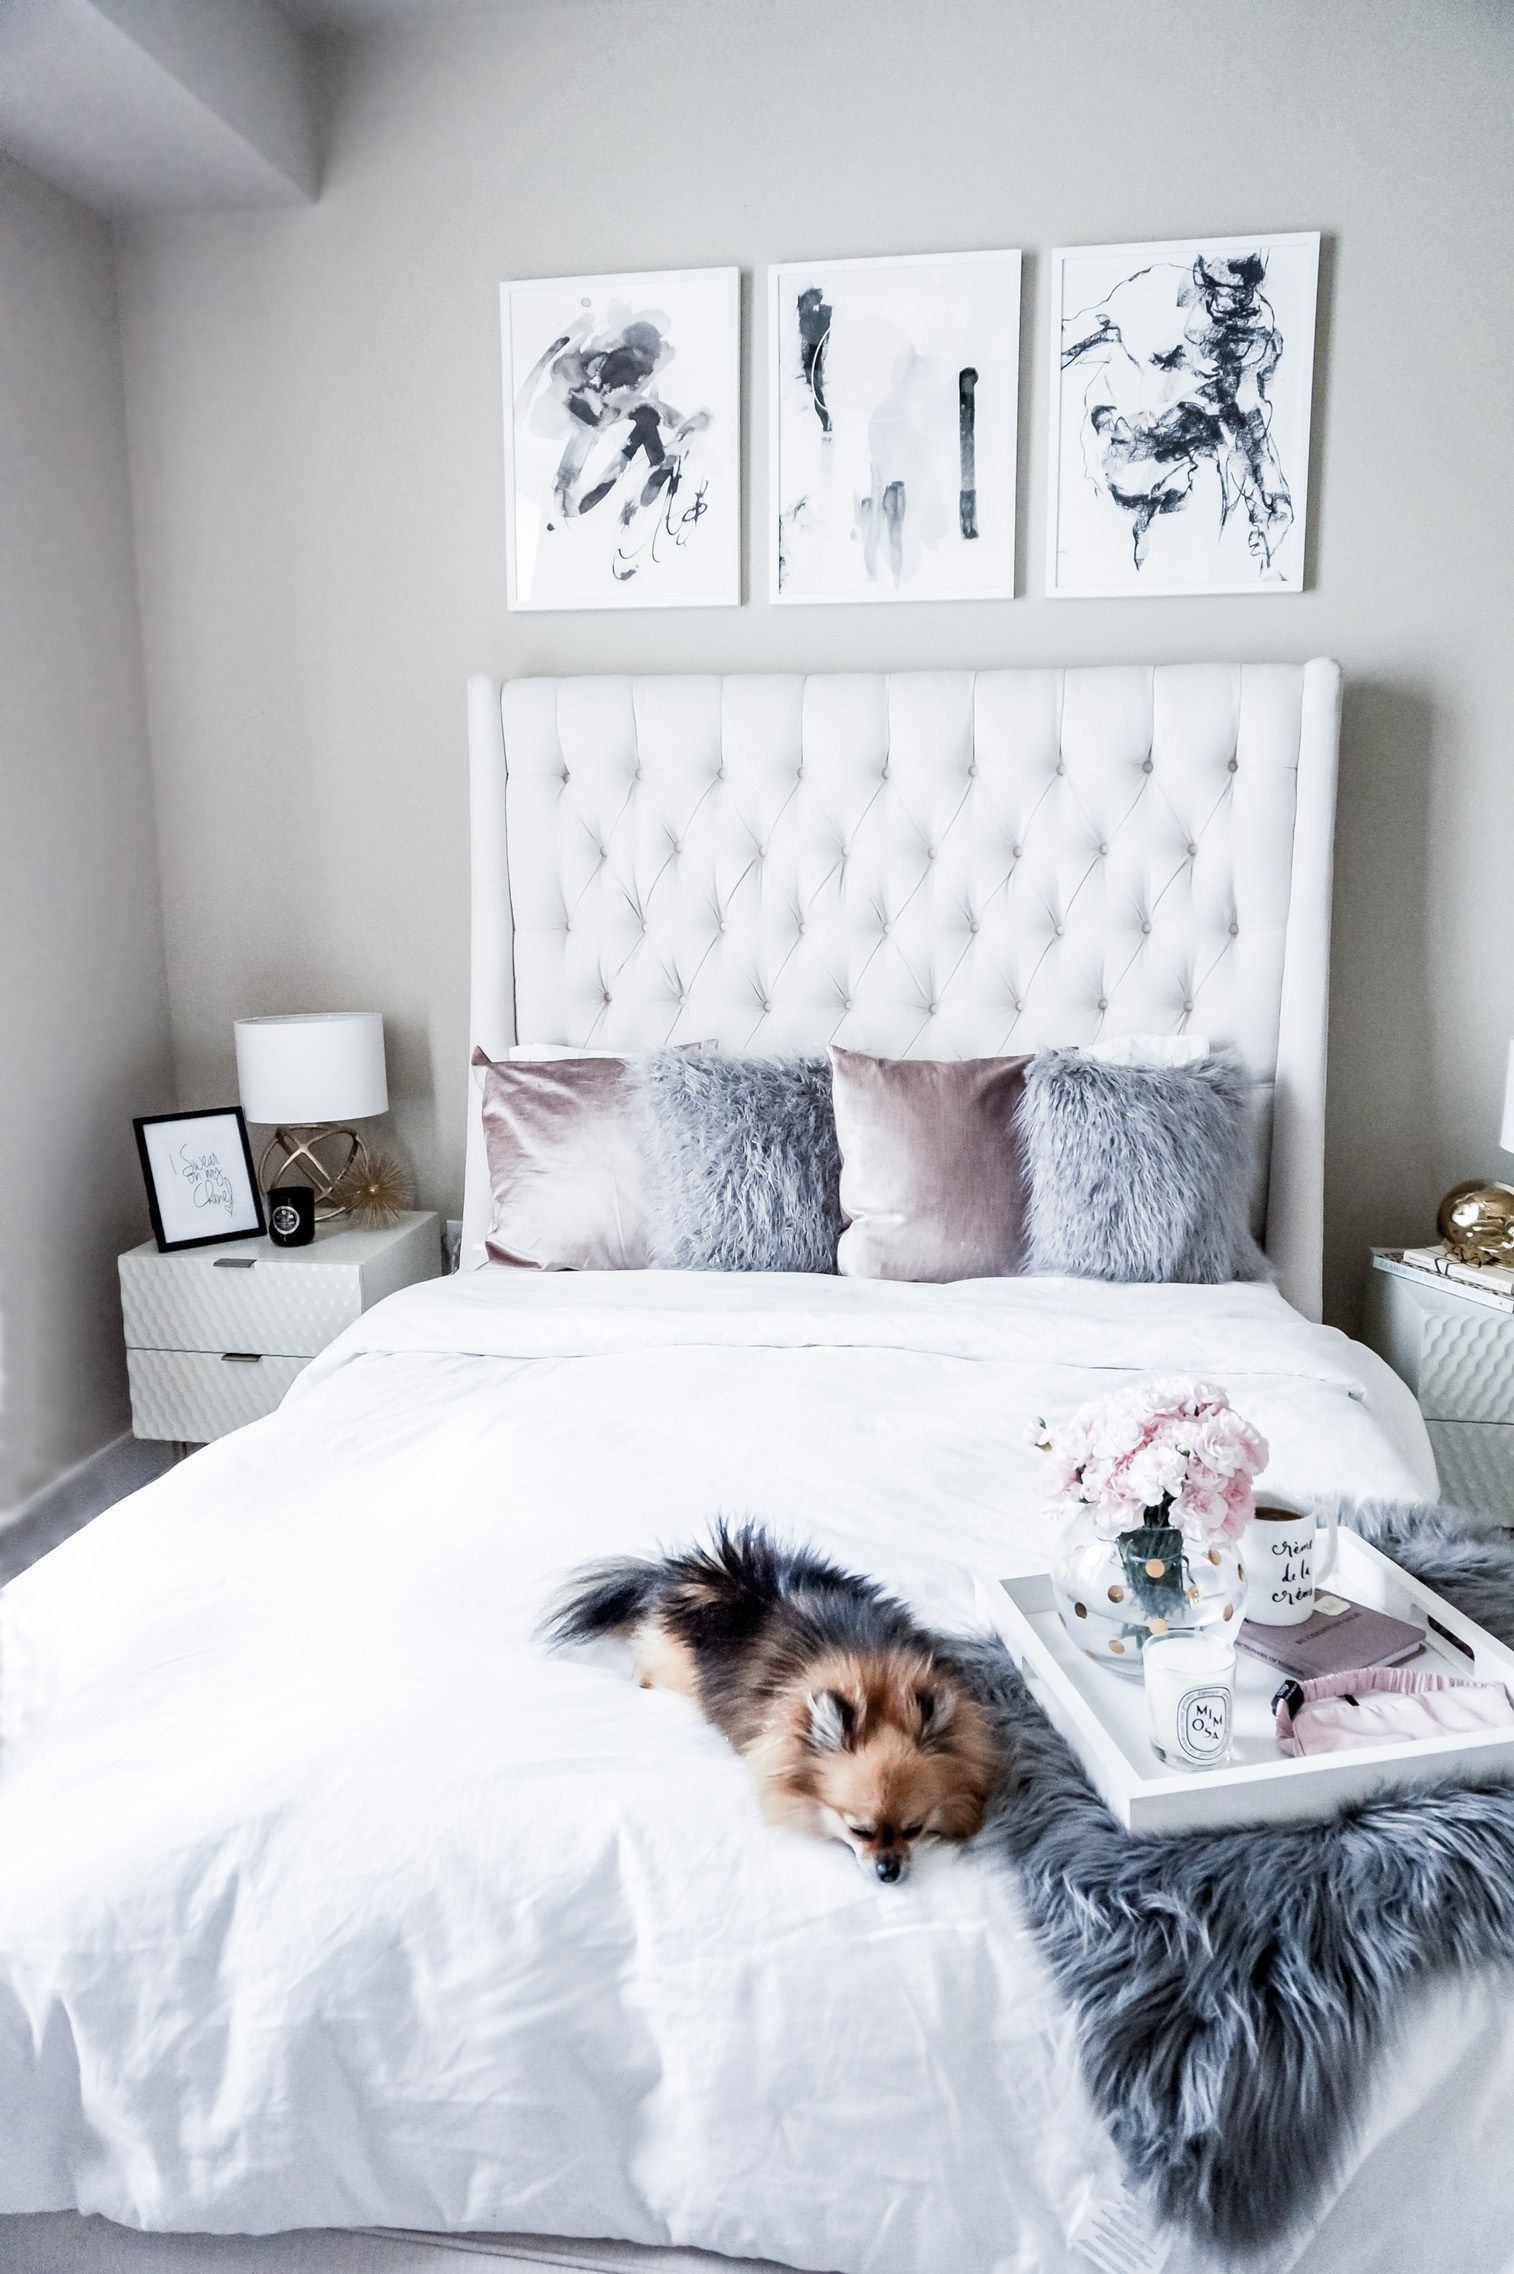 Ordinaire Tiffany Jais Houston Fashion And Lifestyle Blogger Sharing Her Updated  Scandinavian Bedroom Interior With Minted, Click To Read More | Minted Art  Prints, ...